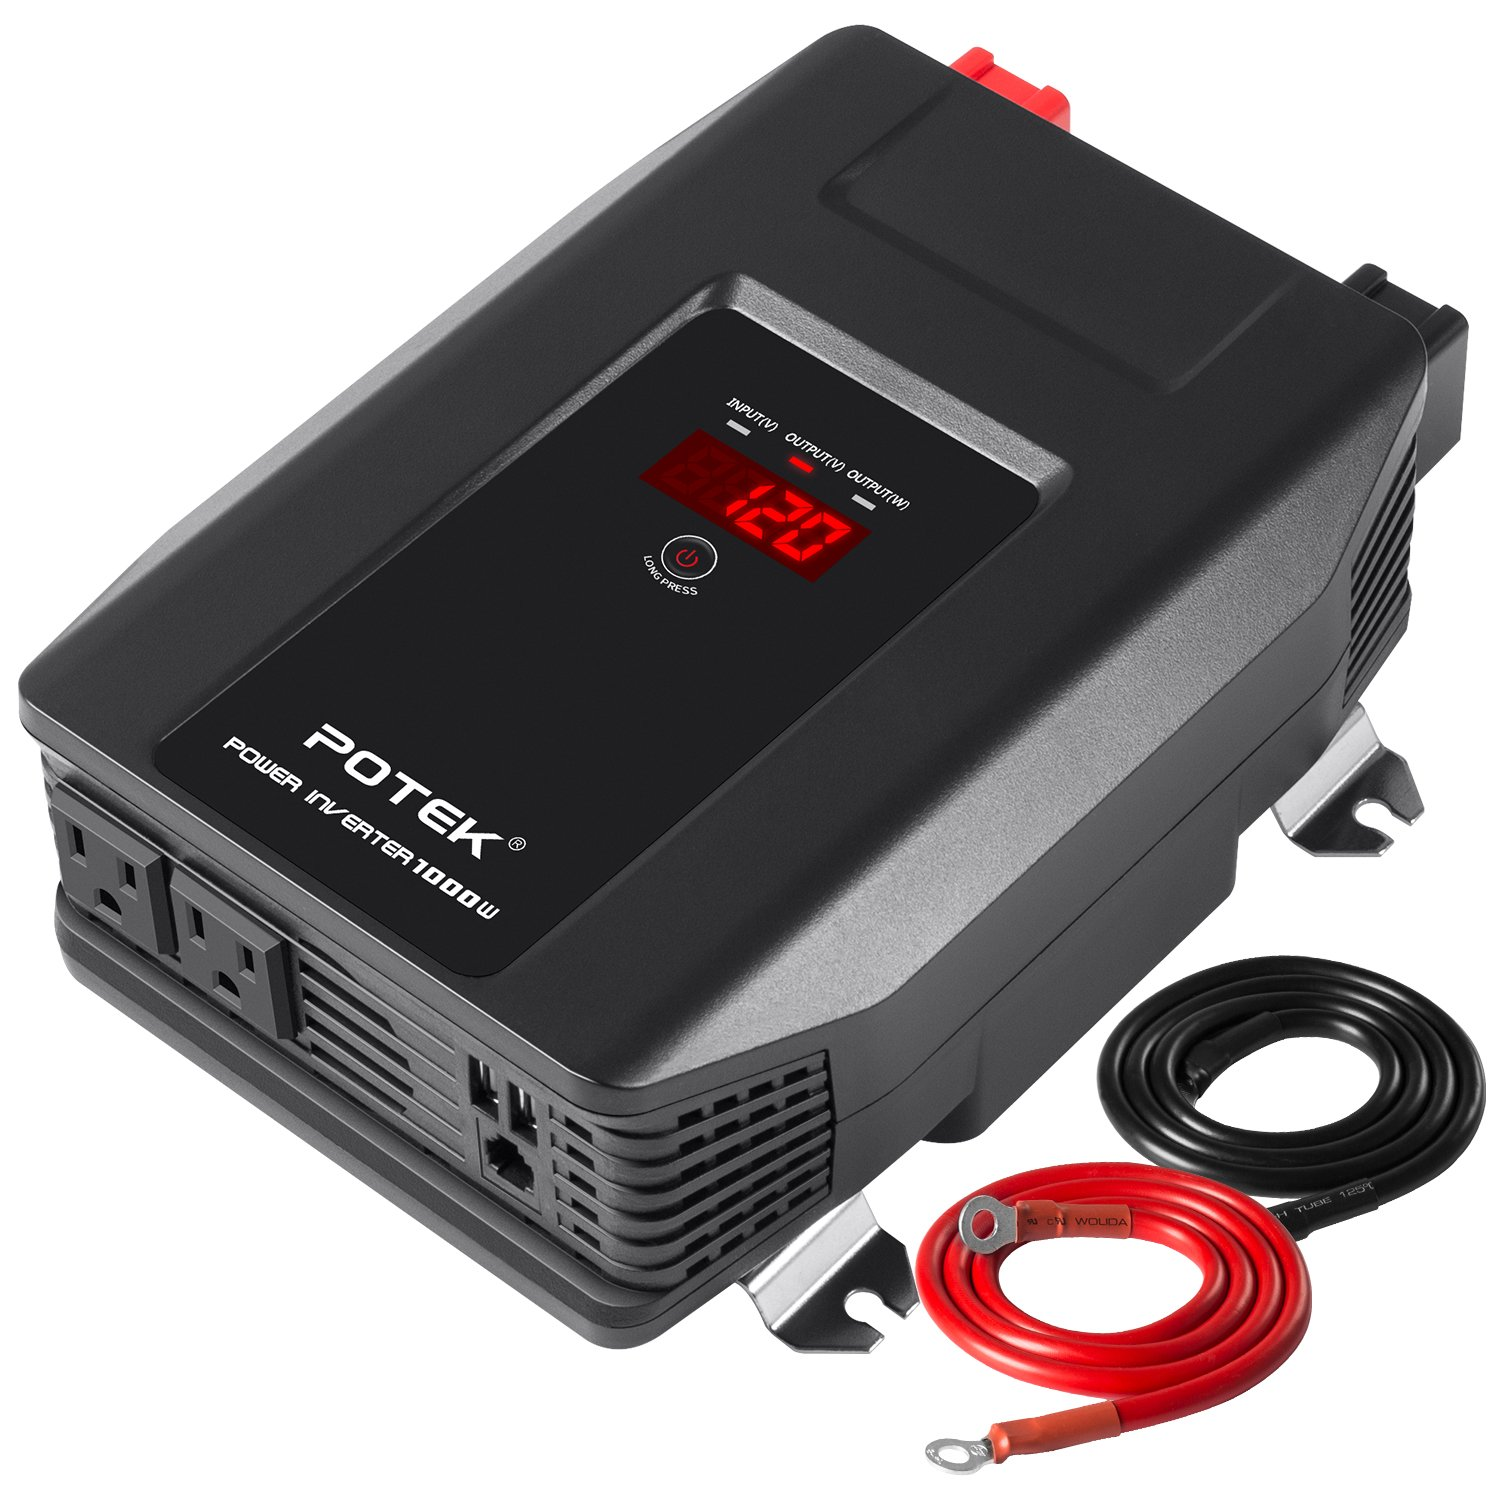 POTEK 1000W Power Inverter Dual AC Outlets and Dual USB Charging Ports DC 12V to AC 110V Car Converter with Digital Display for Blenders,vacuums, Power Tools